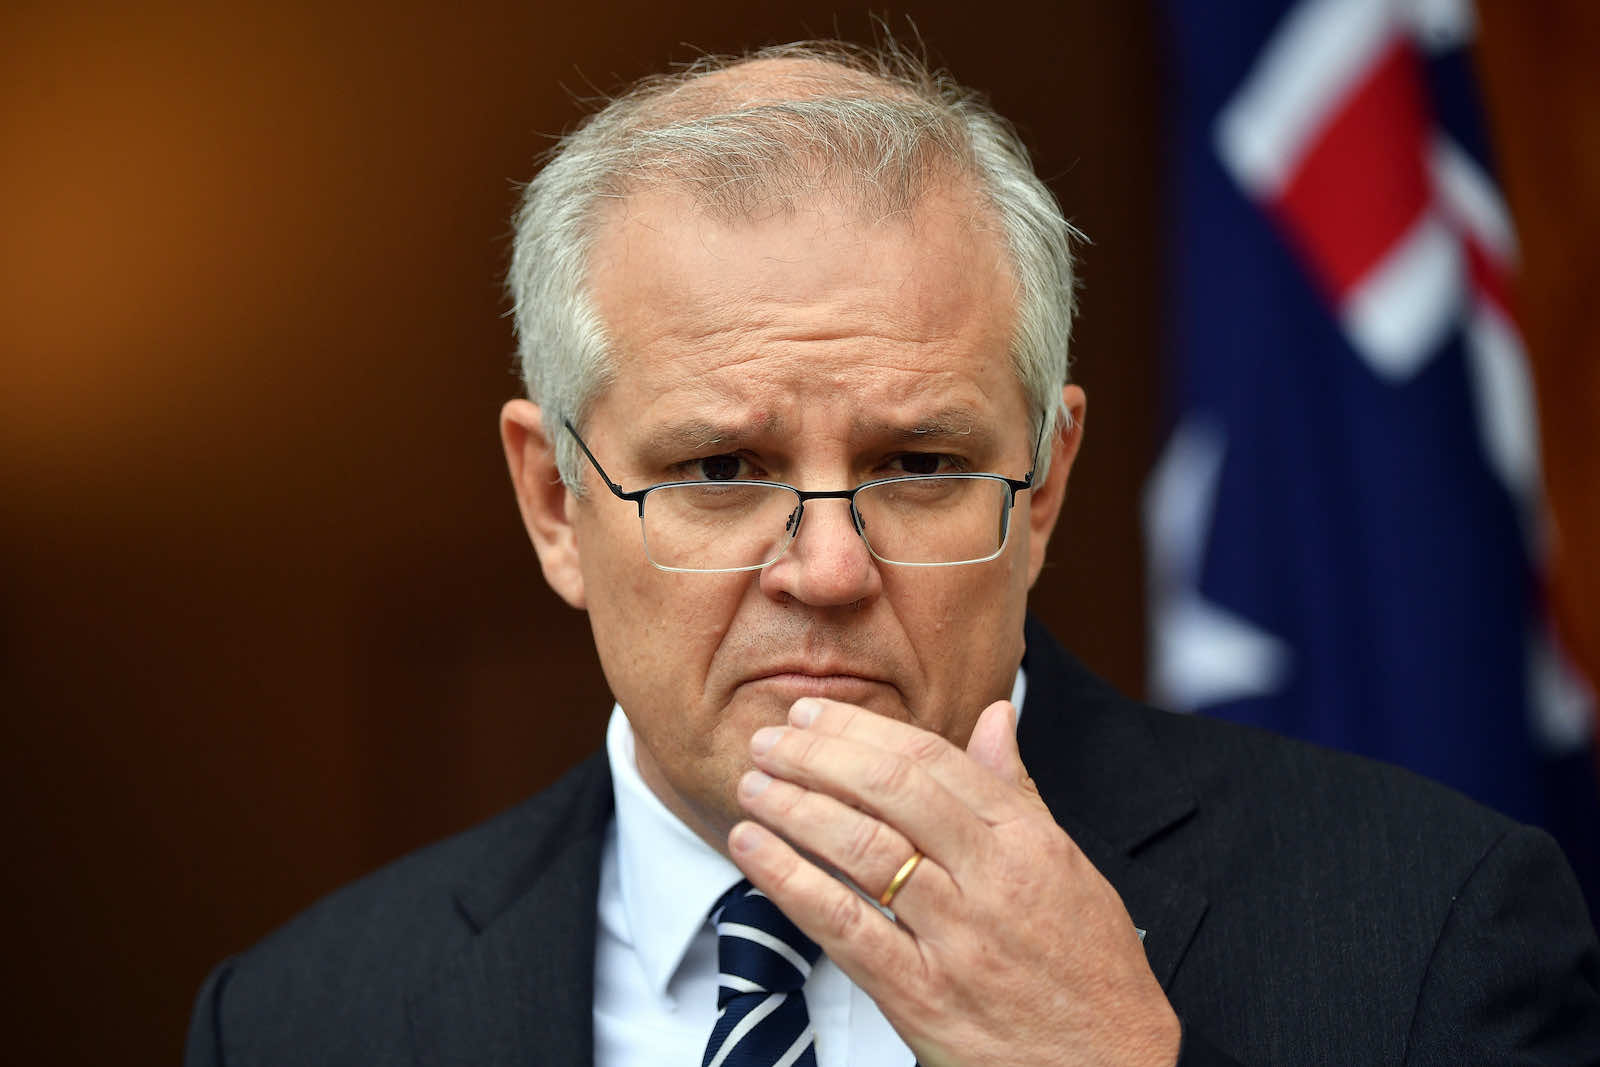 Scott Morrison should urge Joe Biden to spend as much time as possible on deepening ties with smaller countries in the region (Sam Mooy/Getty Images)